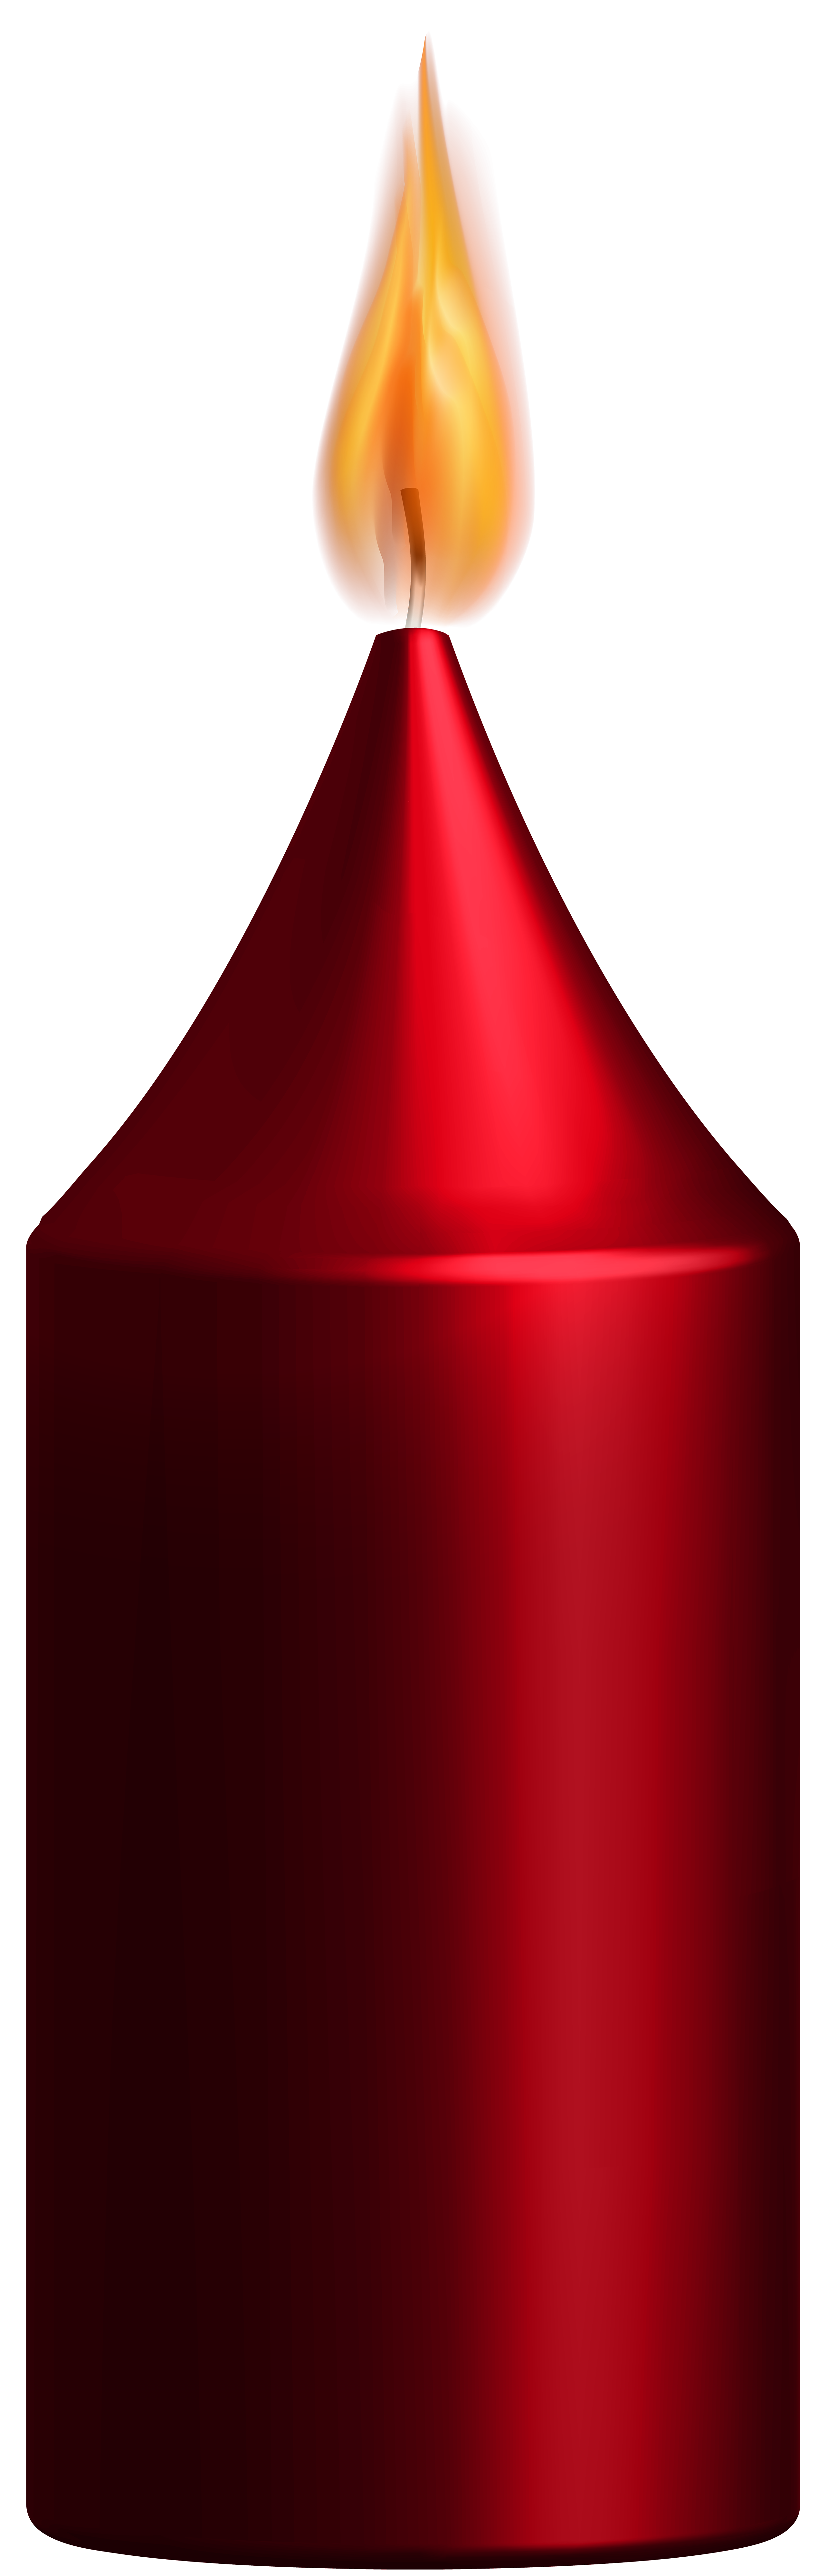 Red candle png. Clip art best web